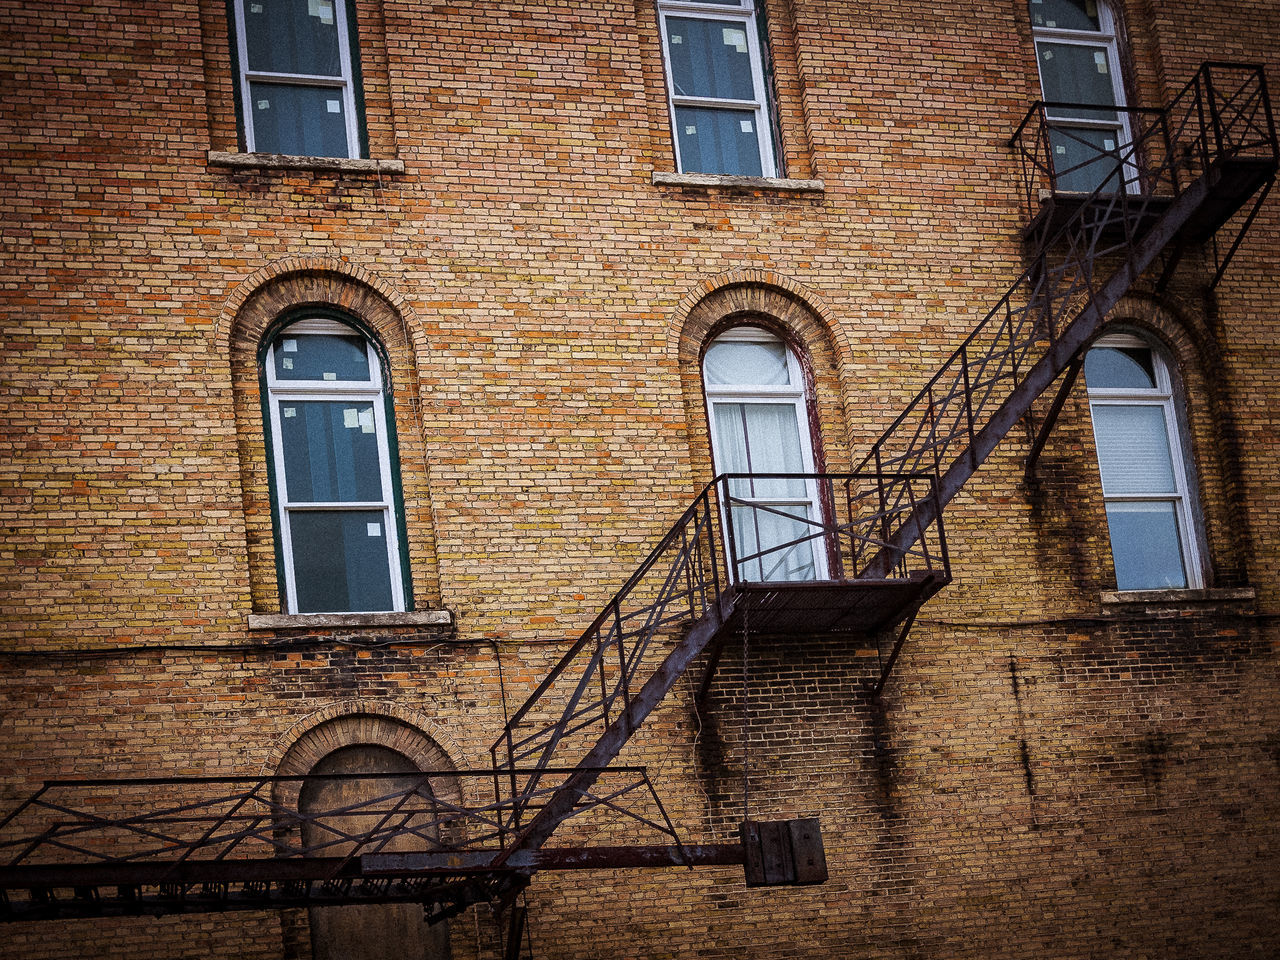 Architecture Bricks Building Exterior Built Structure Day Fireescape Lines And Angles No People Outdoors Rust Shapes And Forms Steps Steps And Staircases Window Fresh On Eyeem